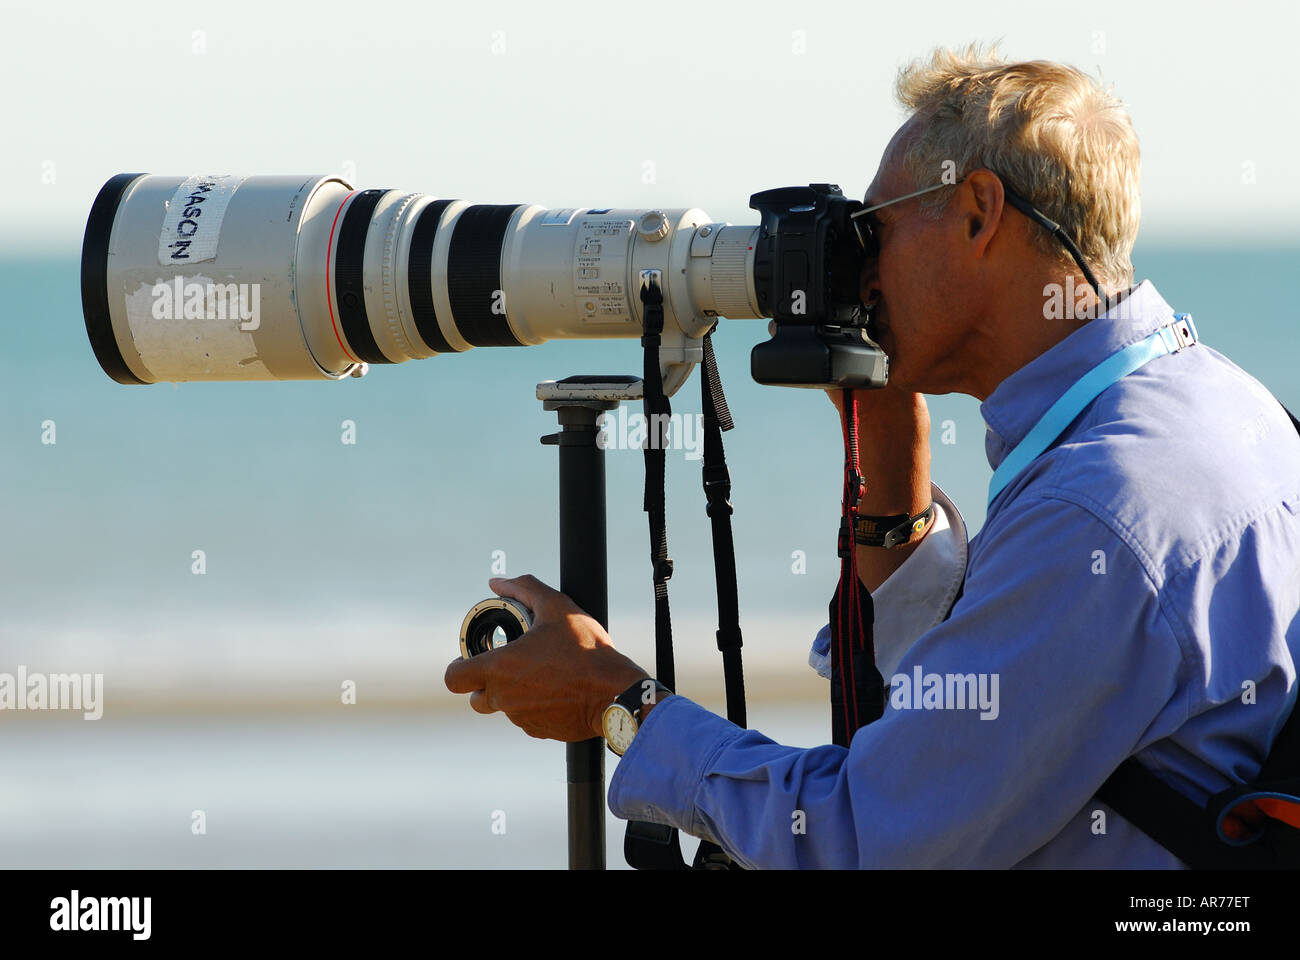 a photographer using a digital slr camera with a large zoom telephoto lens attached on a tripod Stock Photo